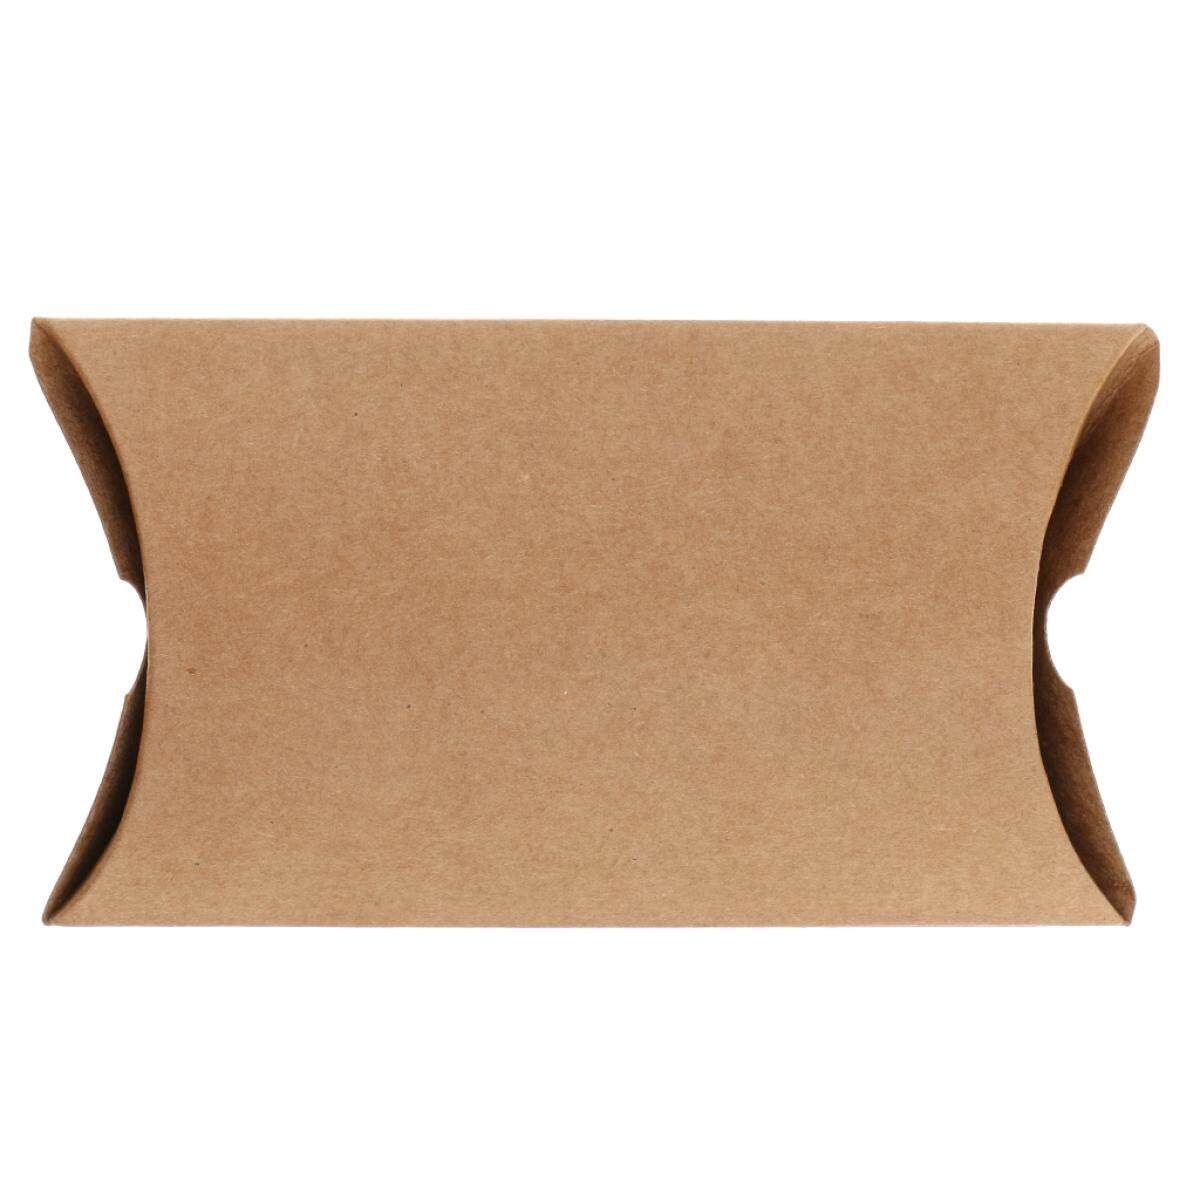 50pcs Kraft Paper Sweets Candy Pillow Boxes Gift Boxes Wedding Party Favor